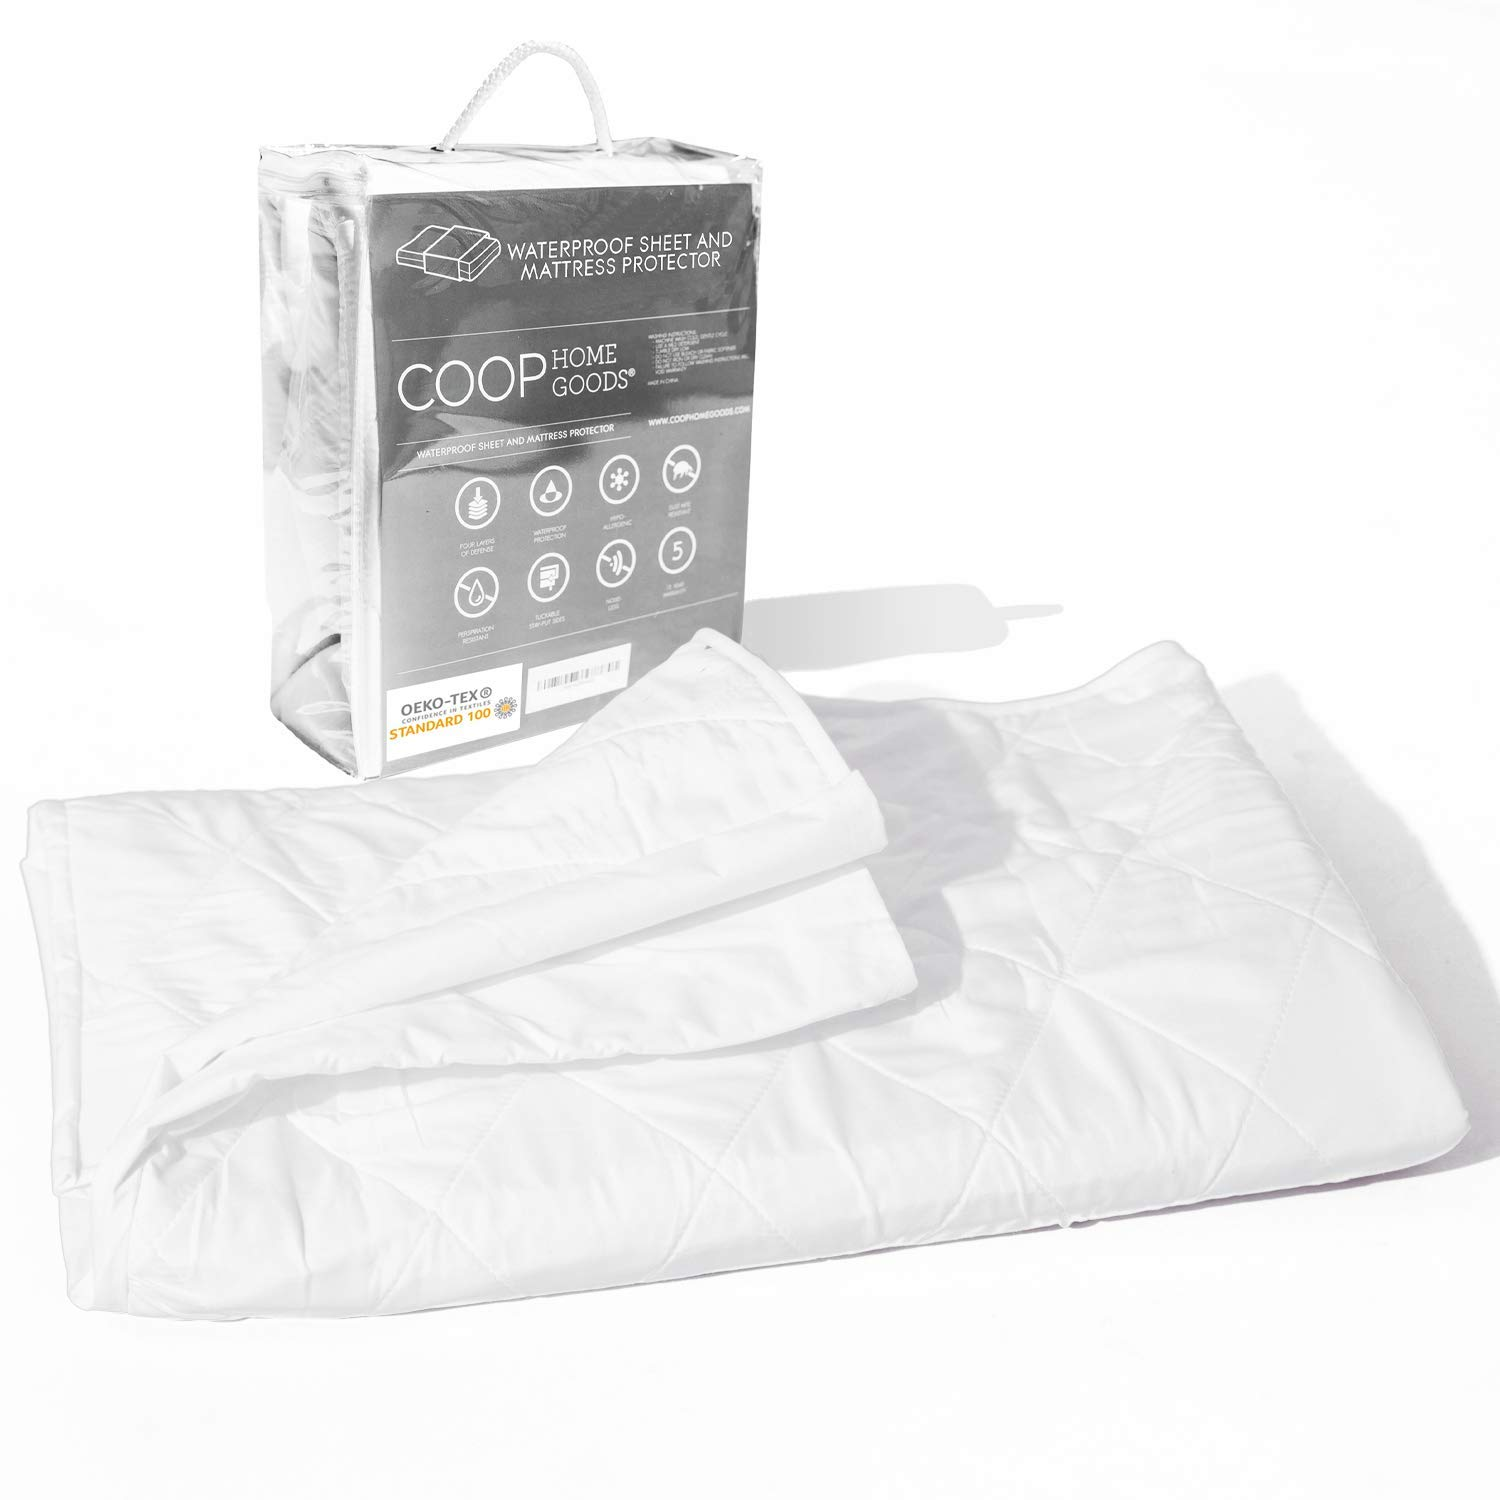 """Coop Home Goods - 4 Layer Washable Incontinence Pad (39"""" x 39.5"""") - Absorbs Up to 6 Cups - Waterproof and Hypoallergenic - Soft, Noiseless and Reusable Mattress Protector - Oeko-TEX Certified - Twin"""